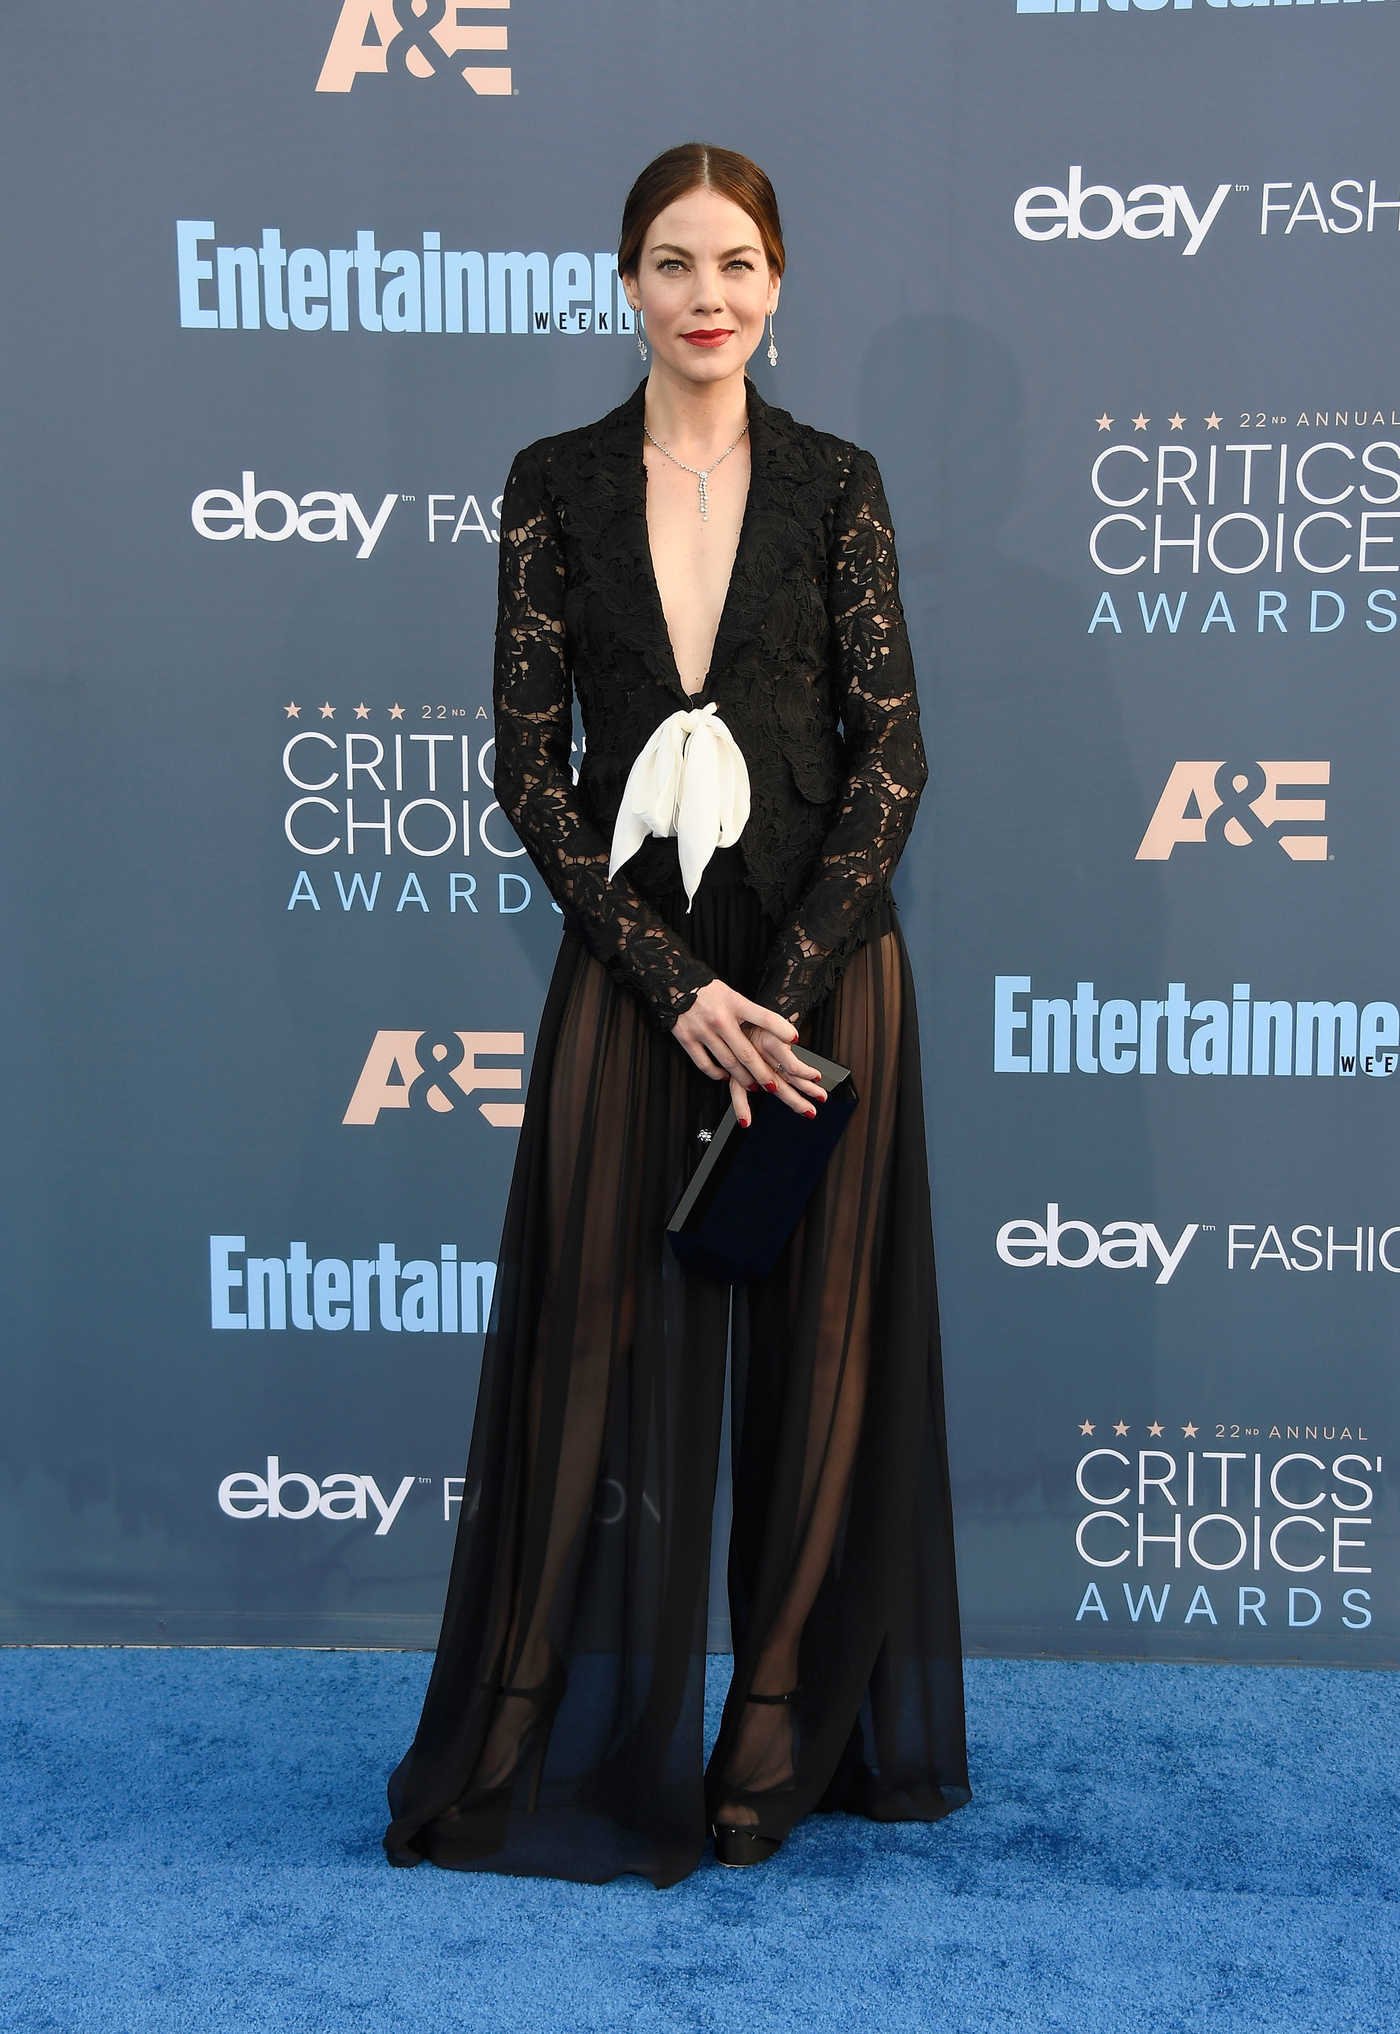 Michelle Monaghan at the 22nd Annual Critics' Choice Awards in Santa Monica 12/11/2016